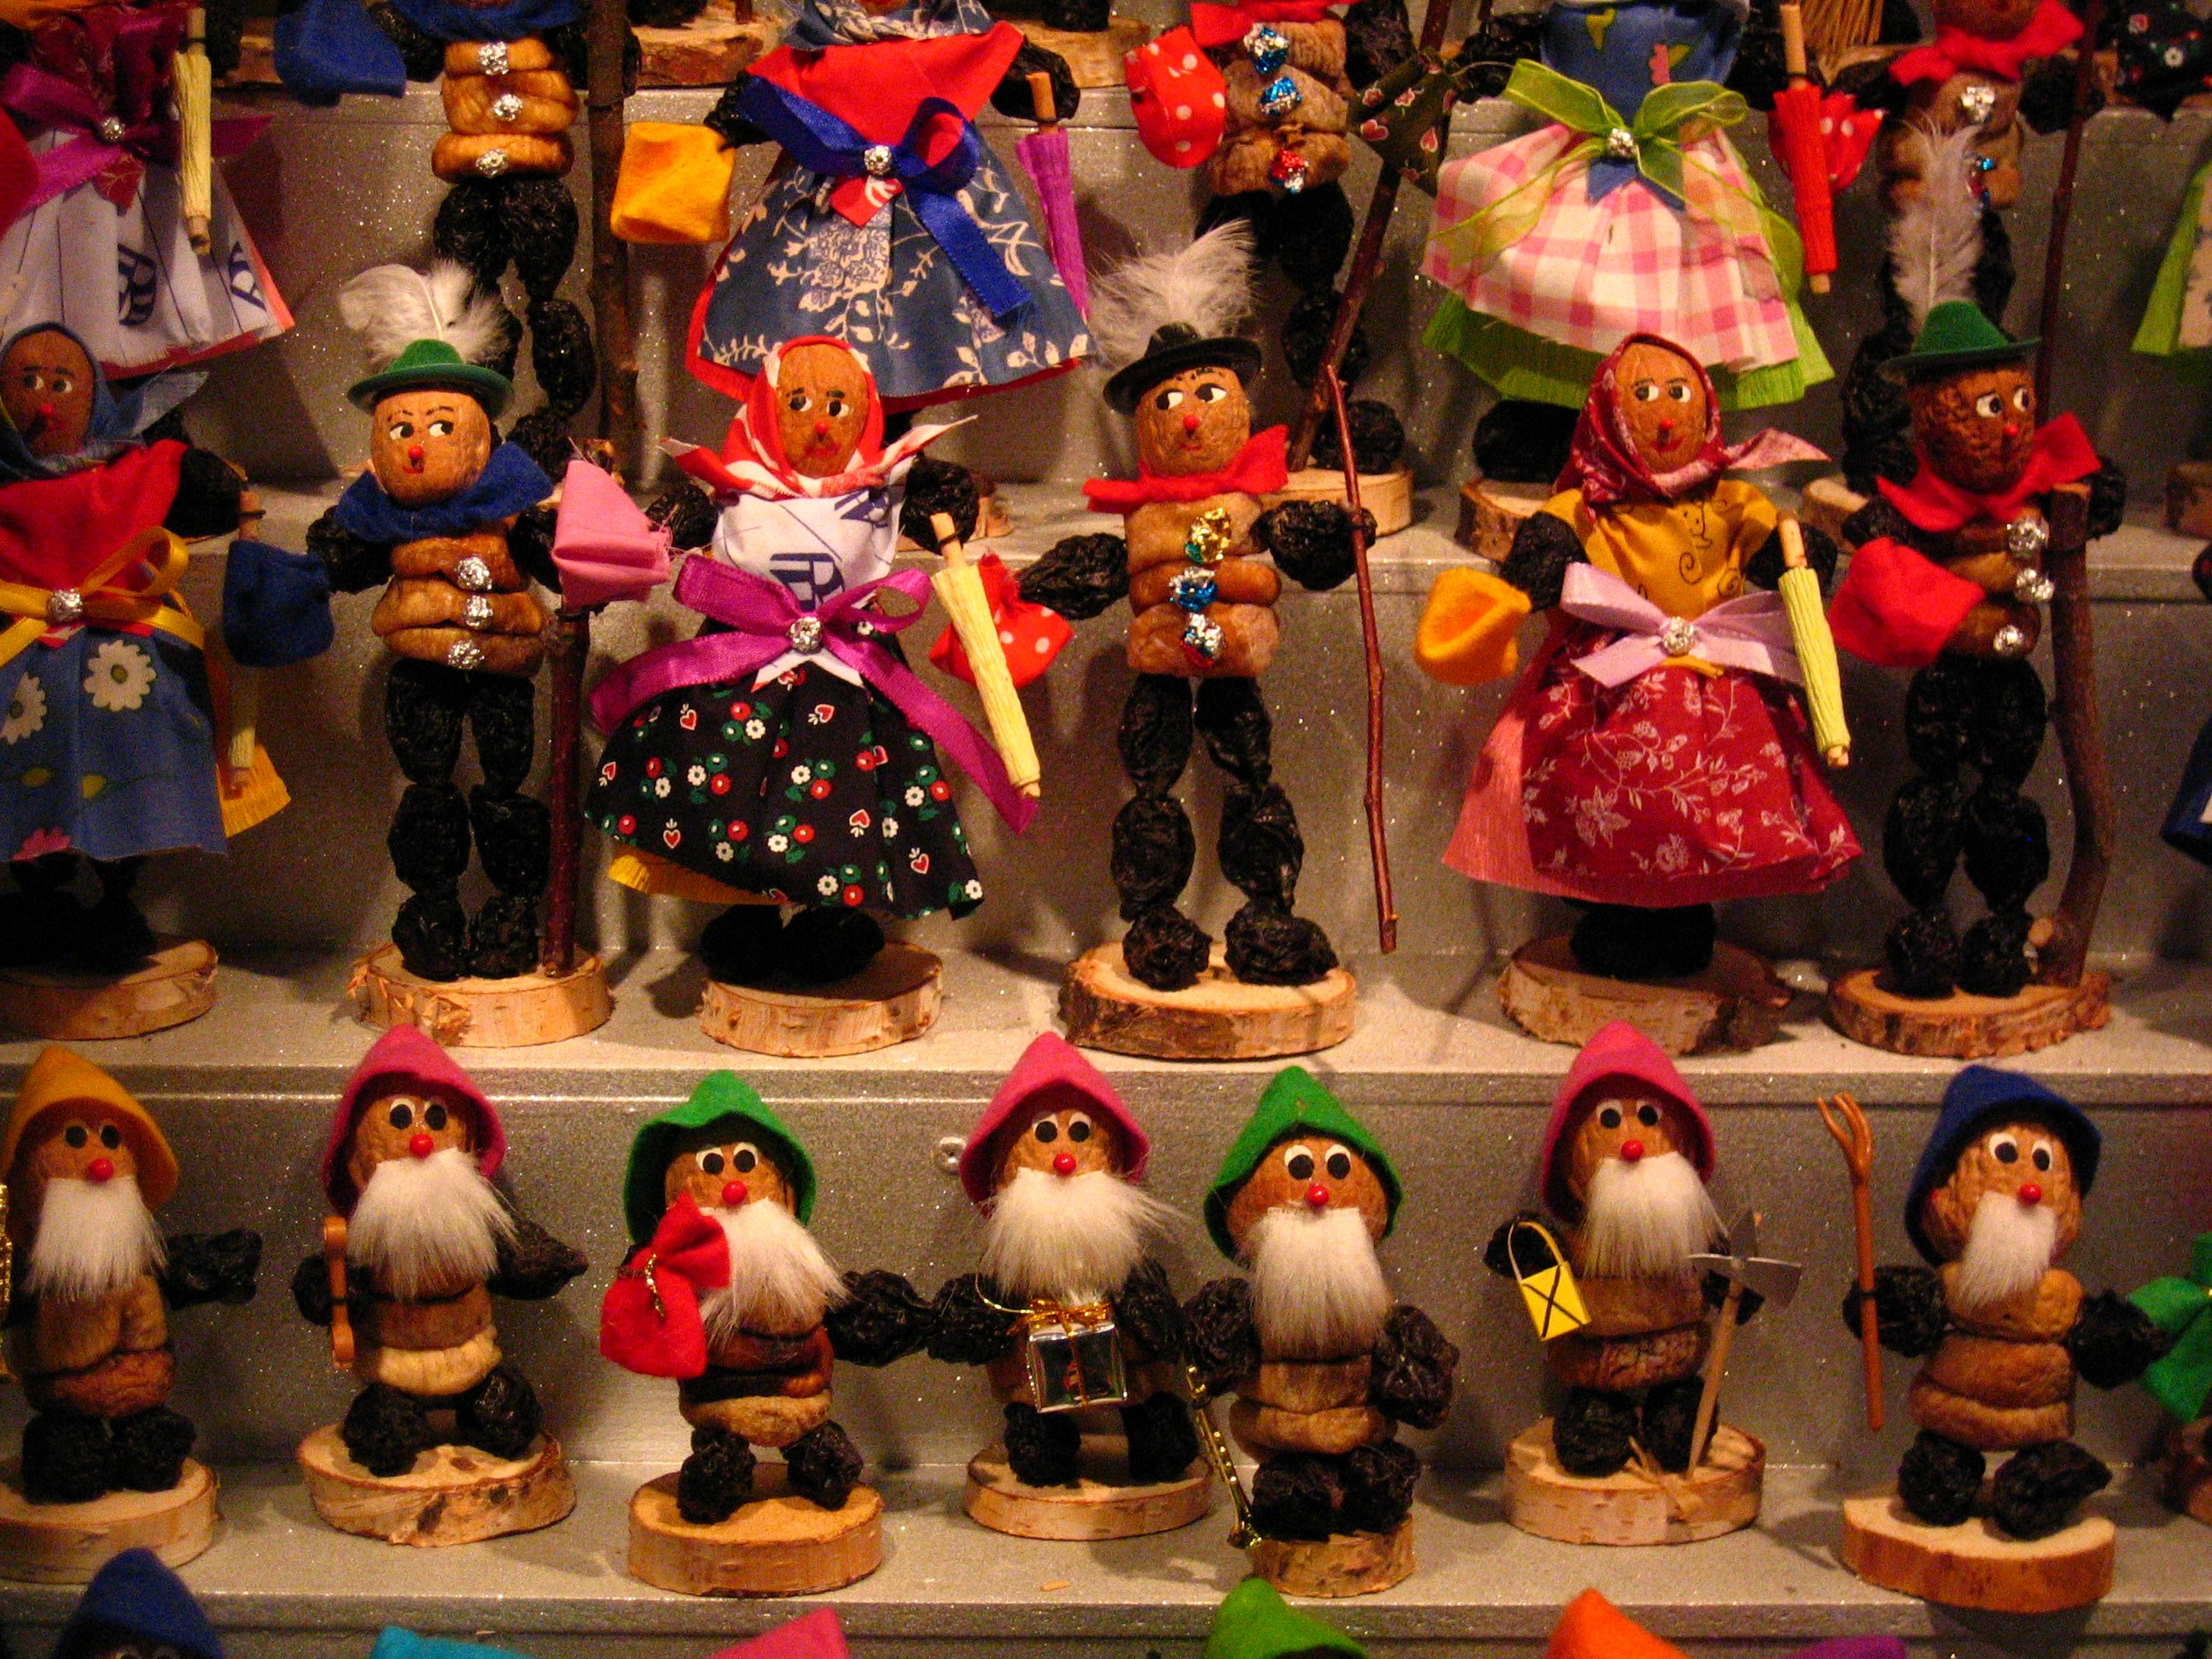 Prune People - Nuremberg Christmas Market by charley1965 (CC)